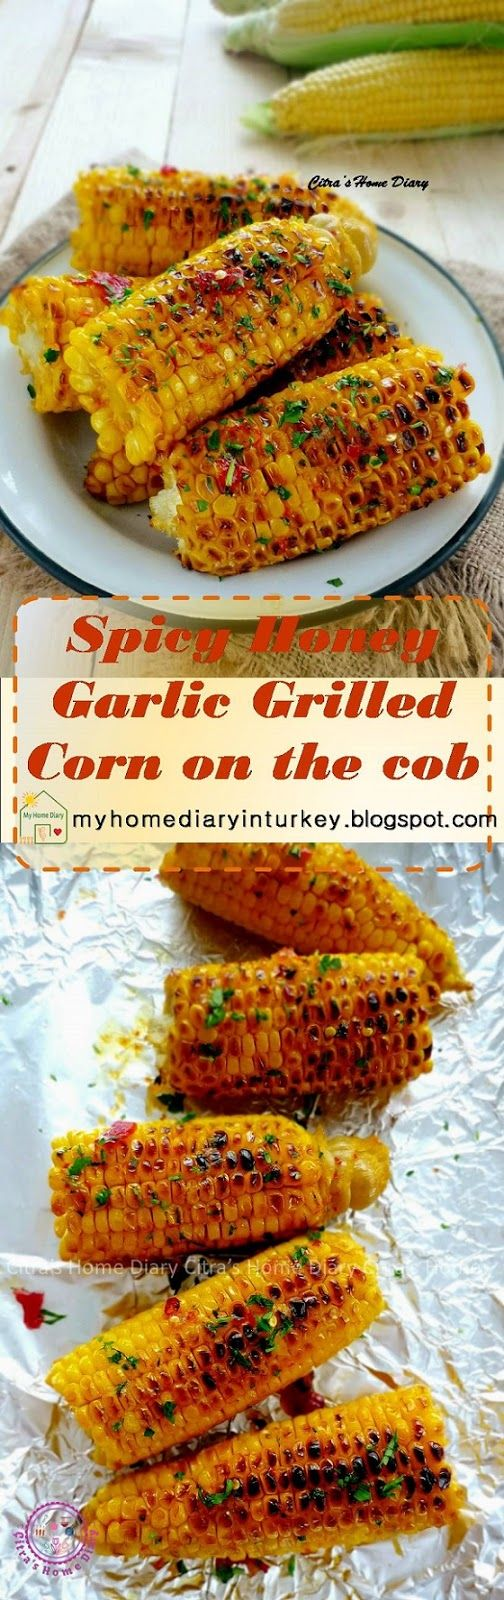 Spicy Honey Garlic Grilled Corn on the cob.